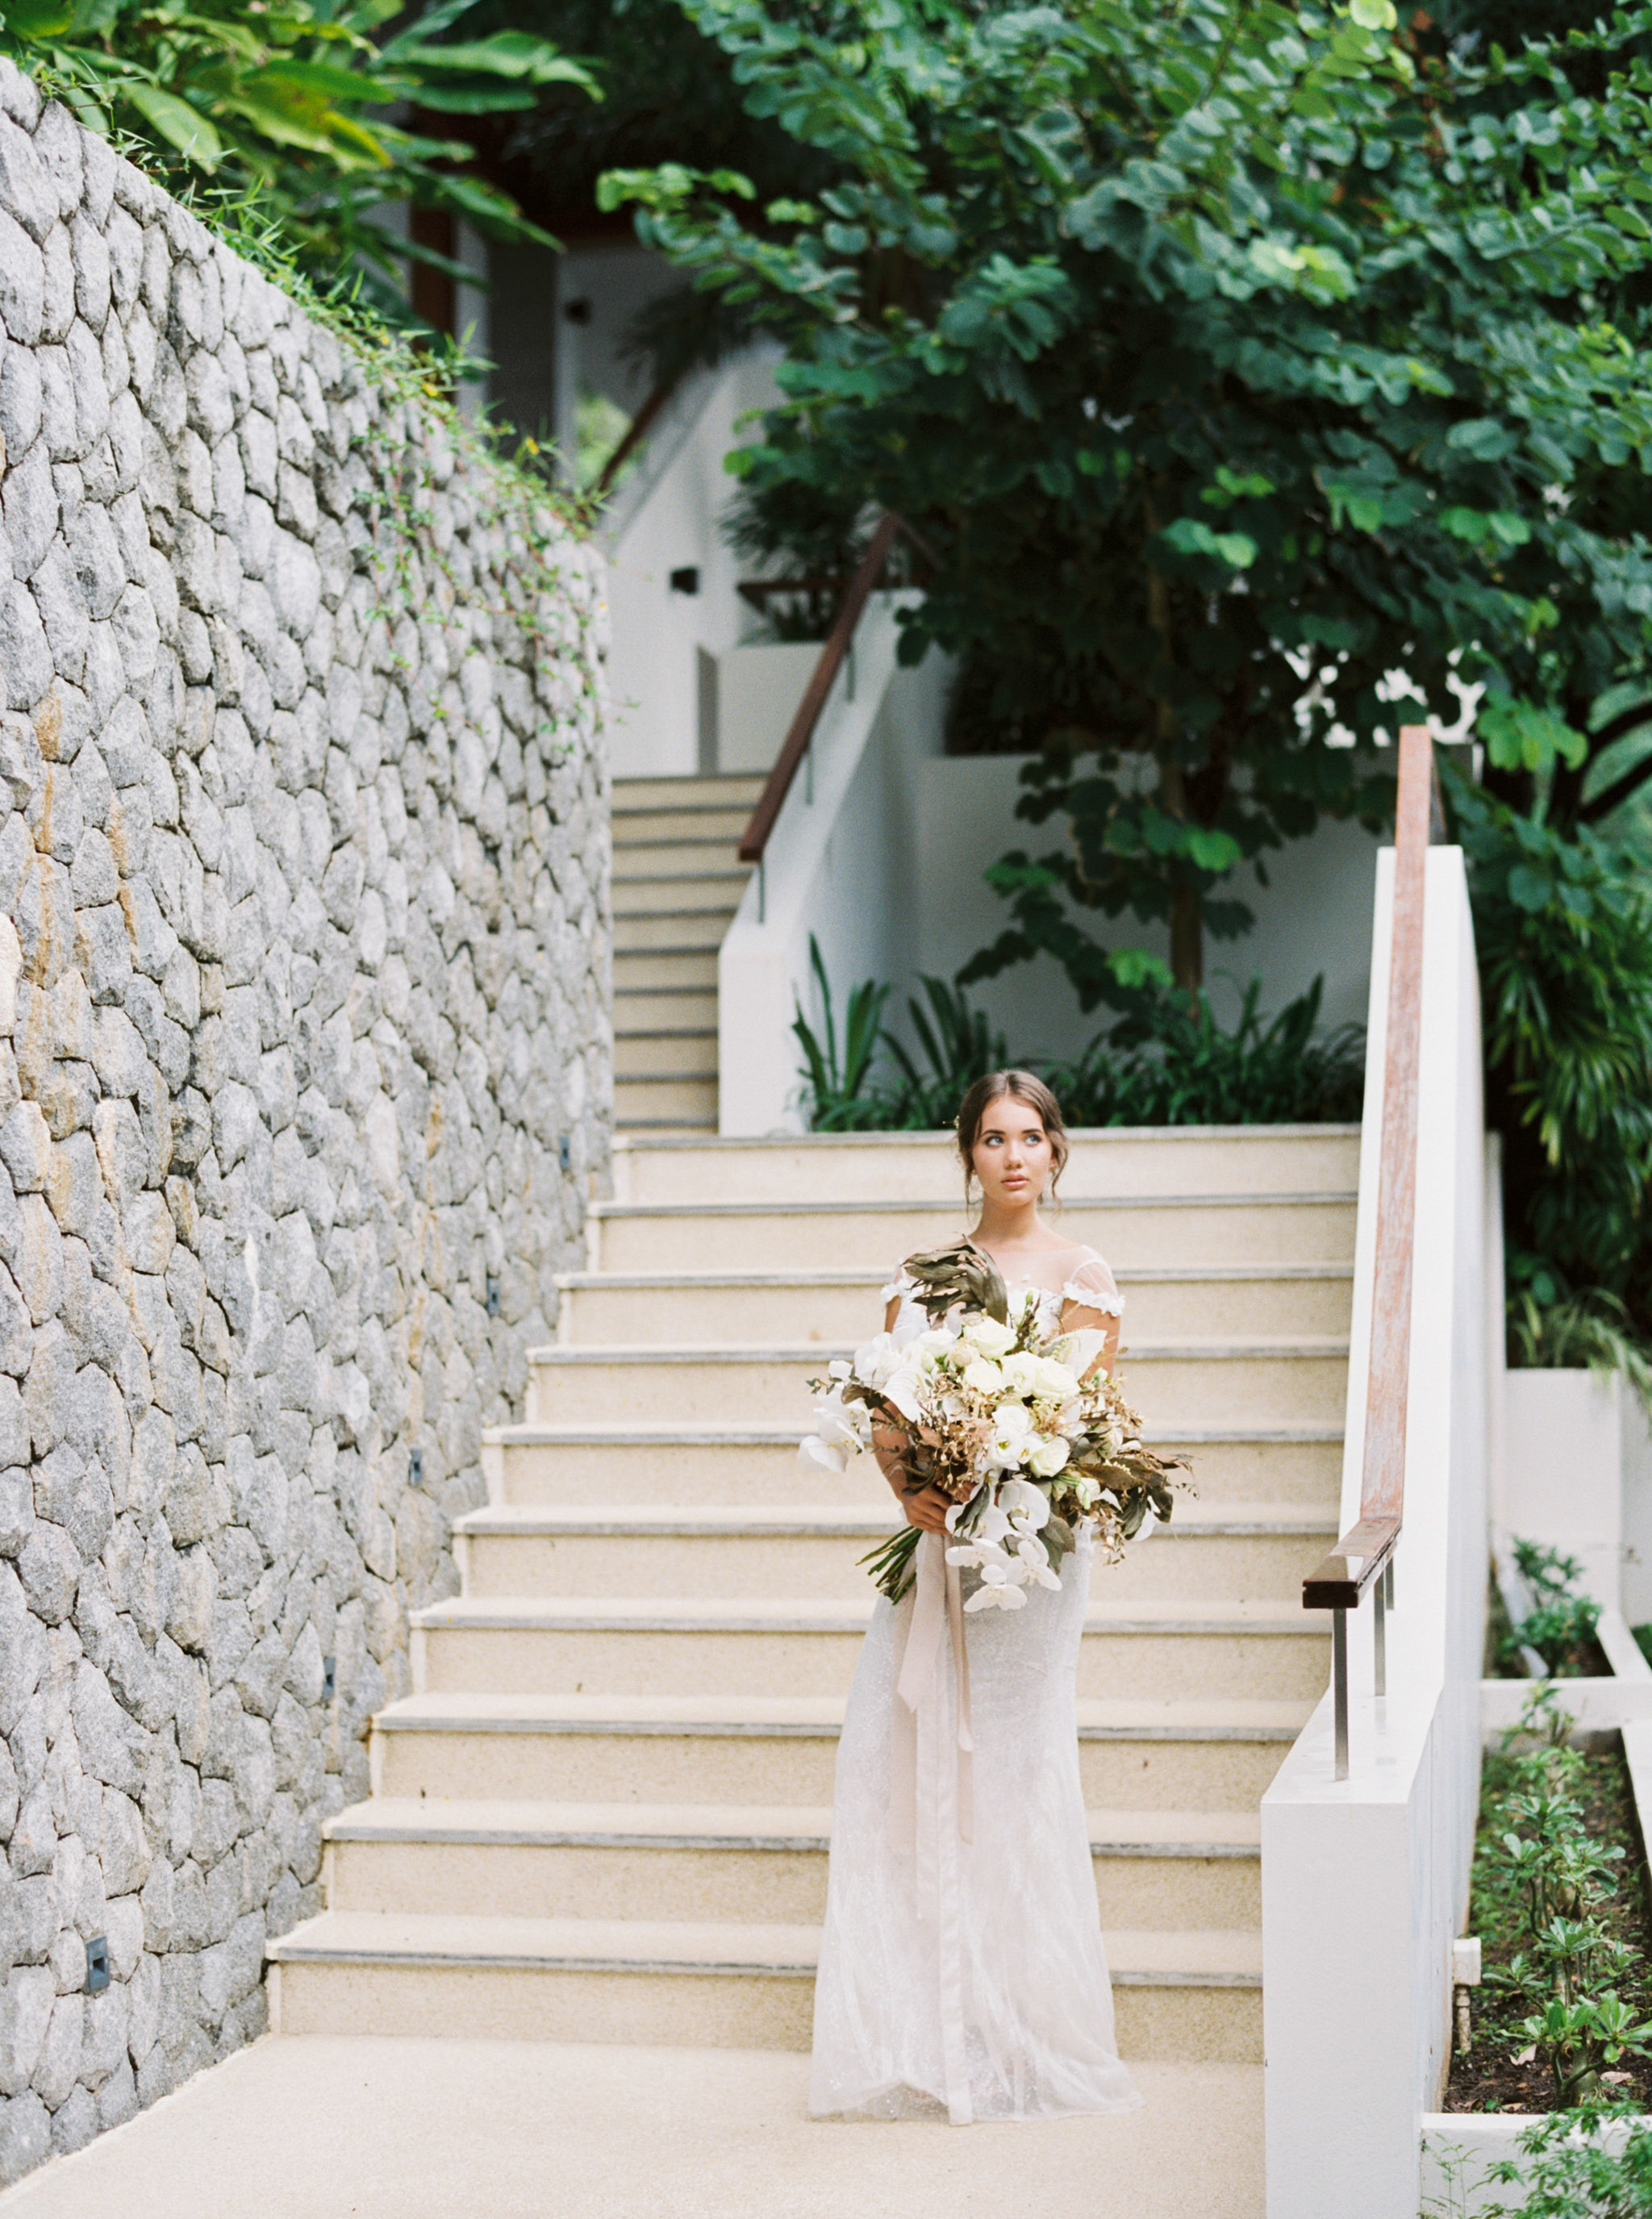 Destination Wedding at The Aquila Luxury Villas in Phuket Thailand Fine Art Film Wedding Photographer Sheri McMahon-00025-25.jpg